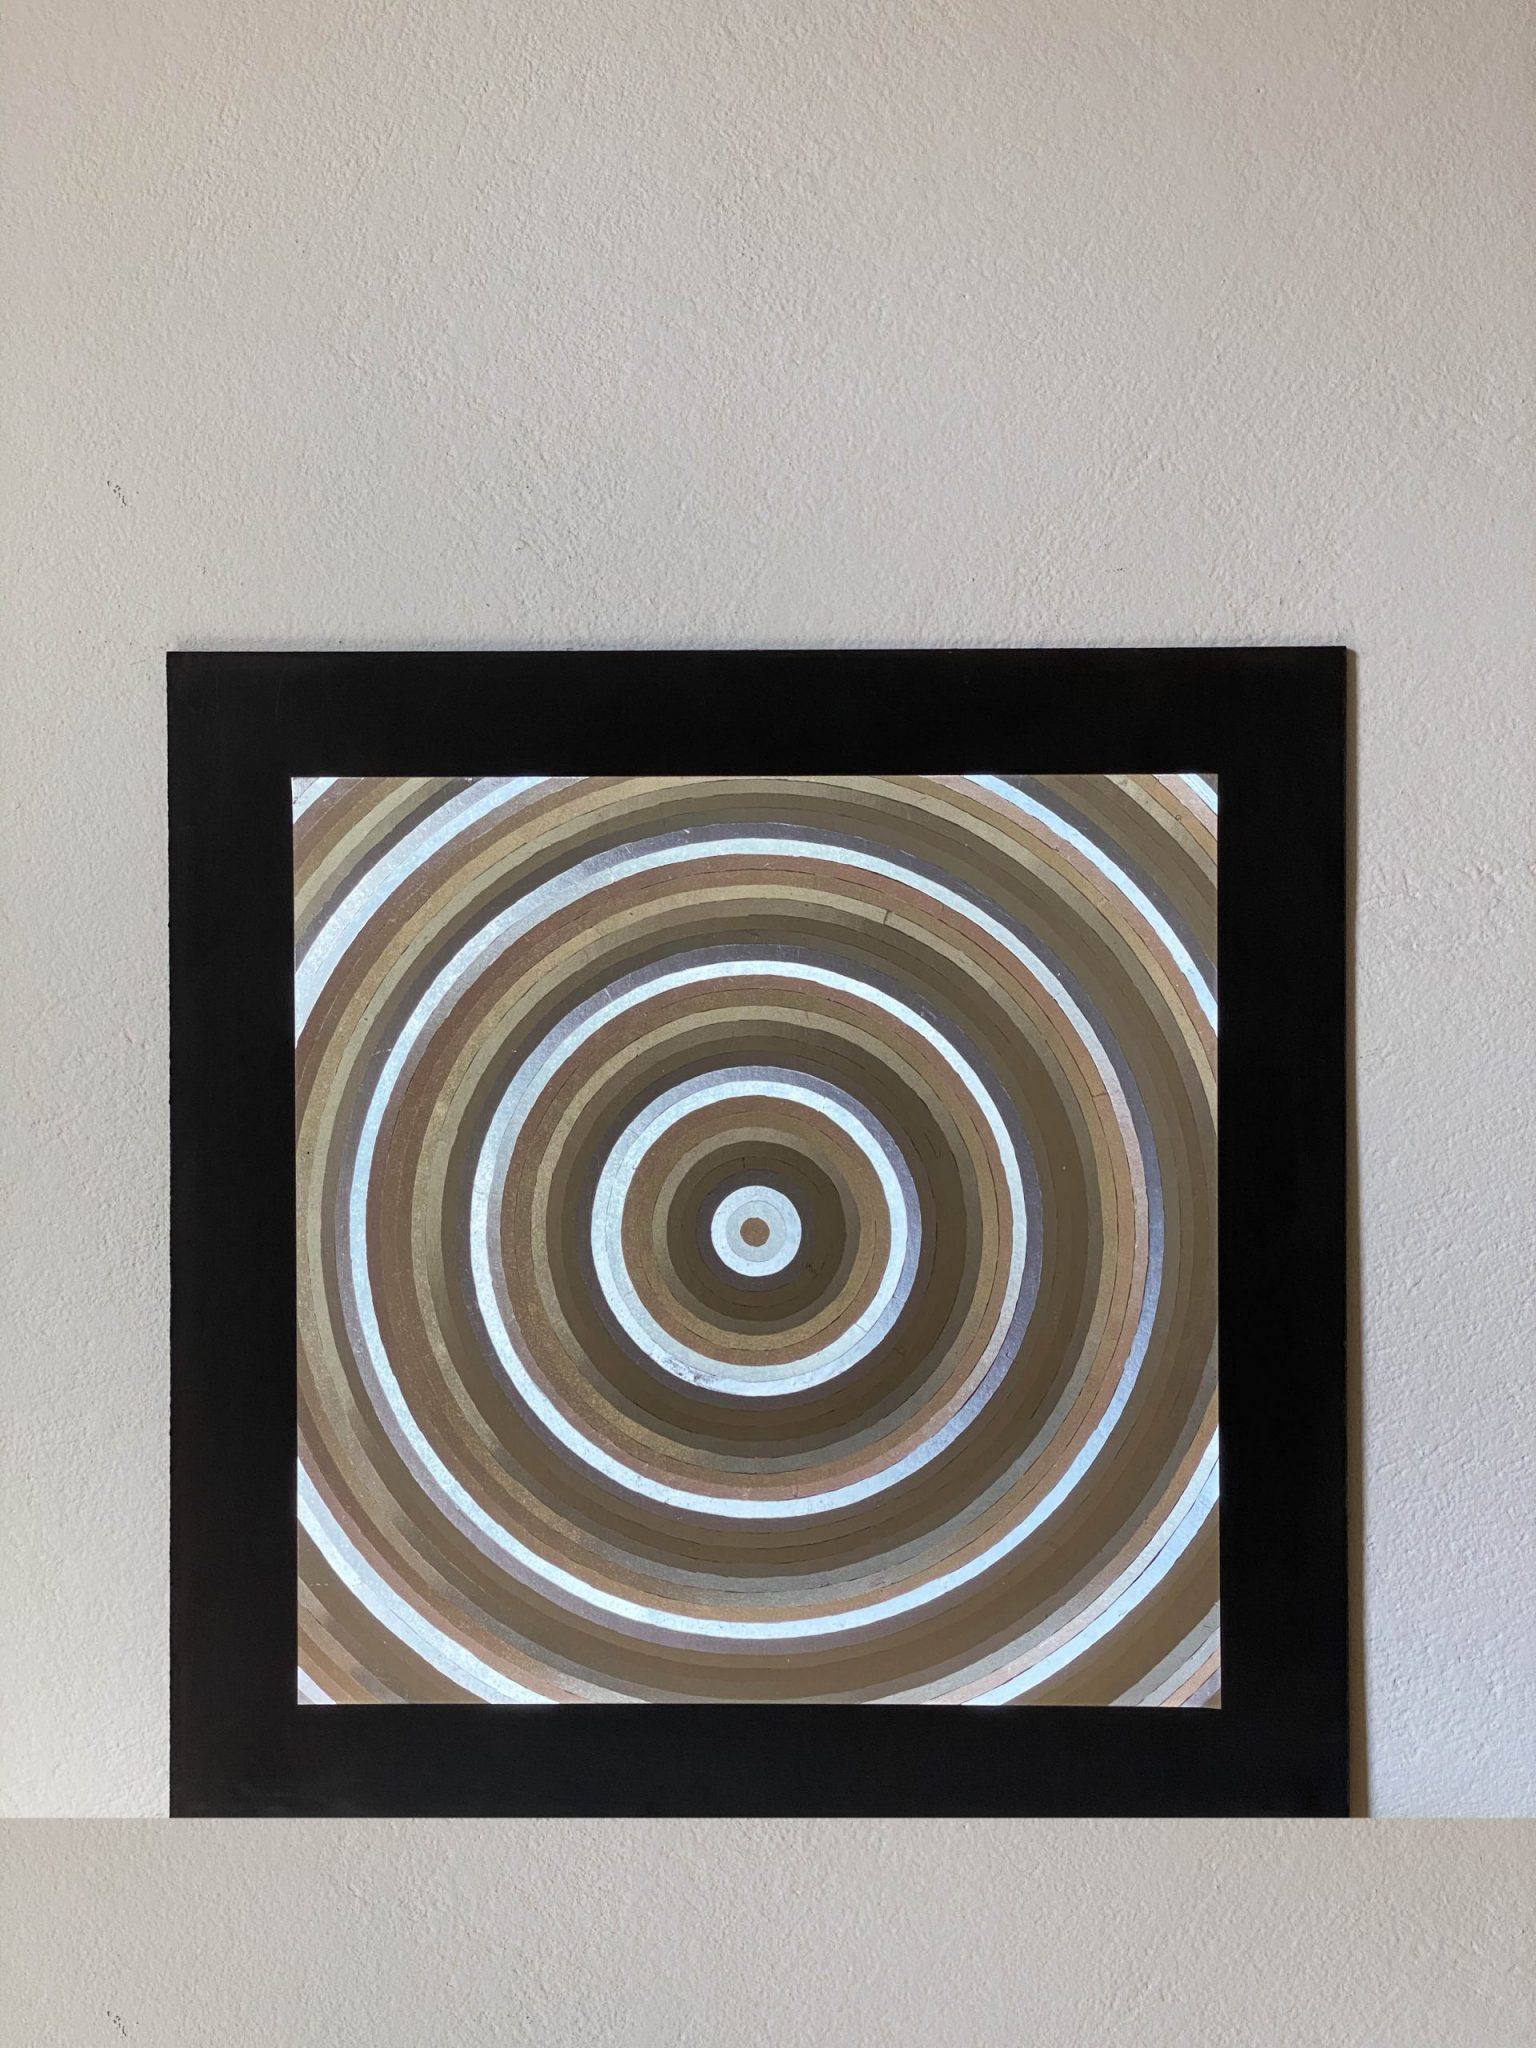 abstract-circles-silver-40-x-40-gravure-foil-art-etching